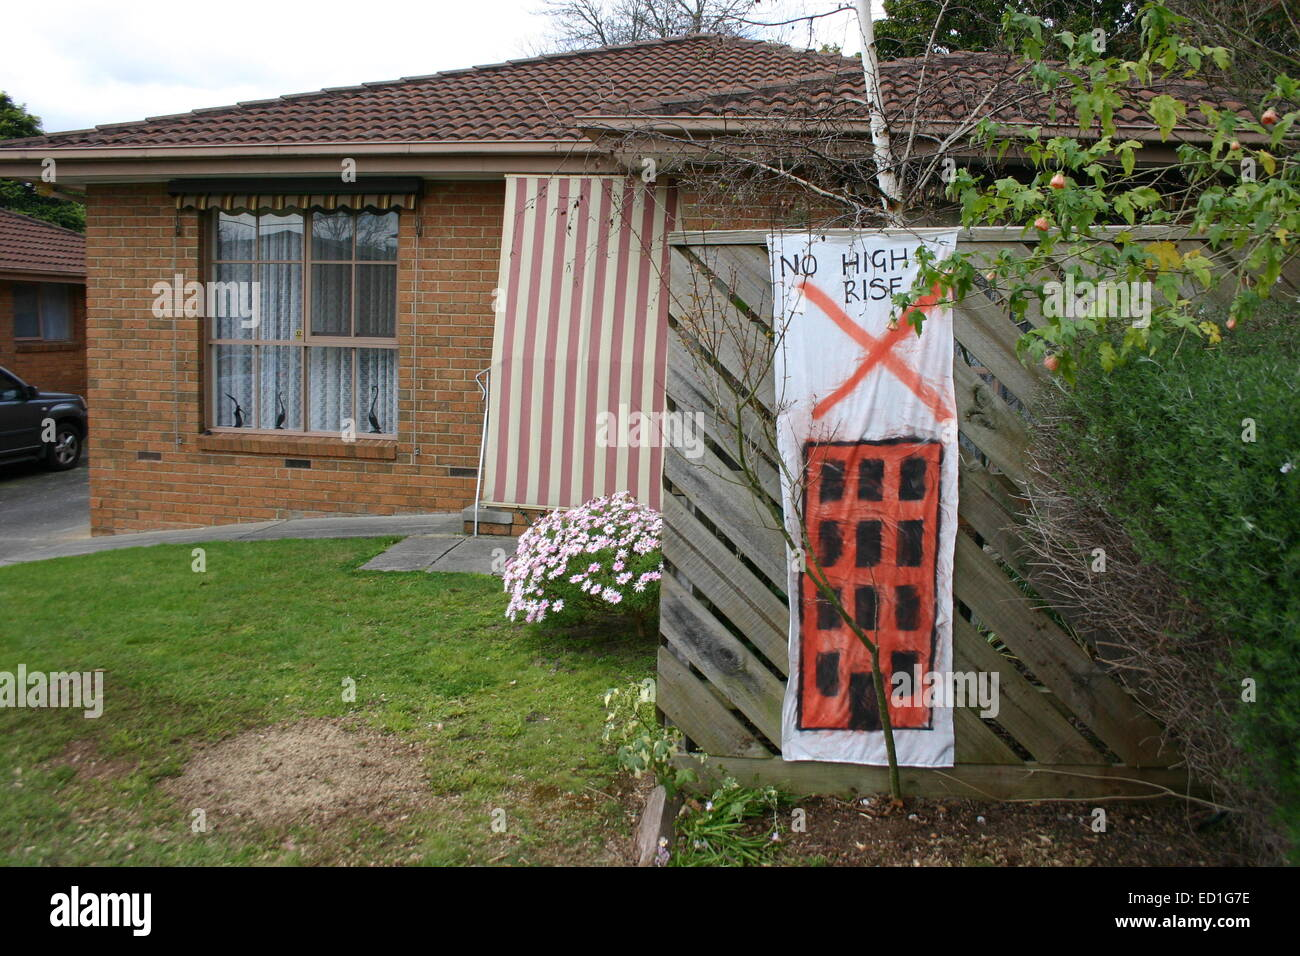 Protest Sign/Banner Outside Residents Home, Protesting Against High Rise Development, Boronia Australia - Stock Image